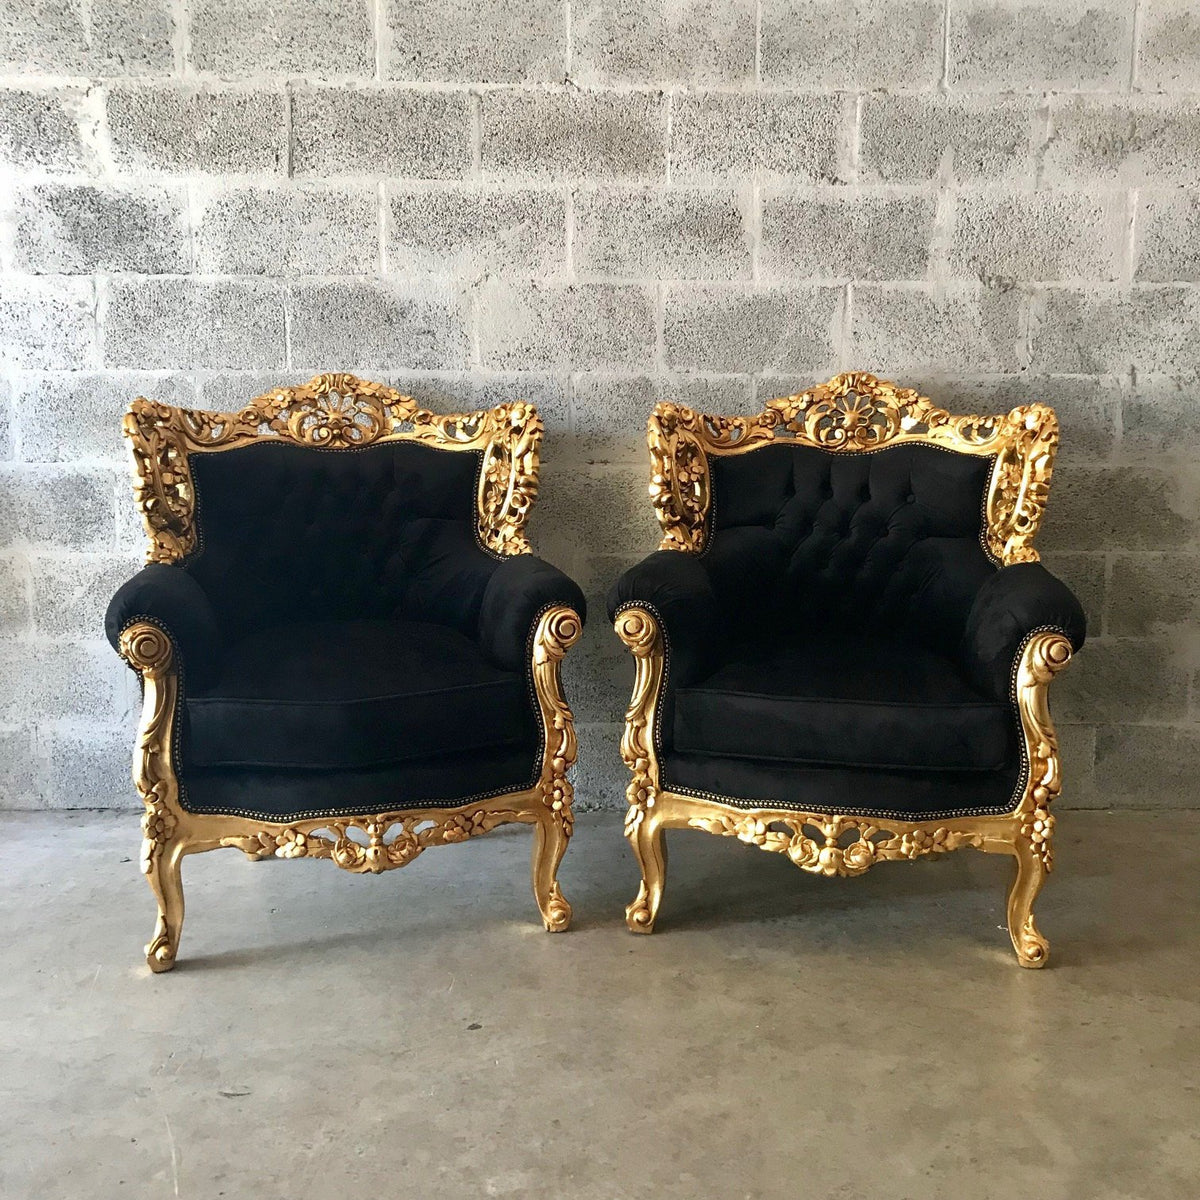 The #1 Online Seller Of Throne Chairs   The Throne Chair ...